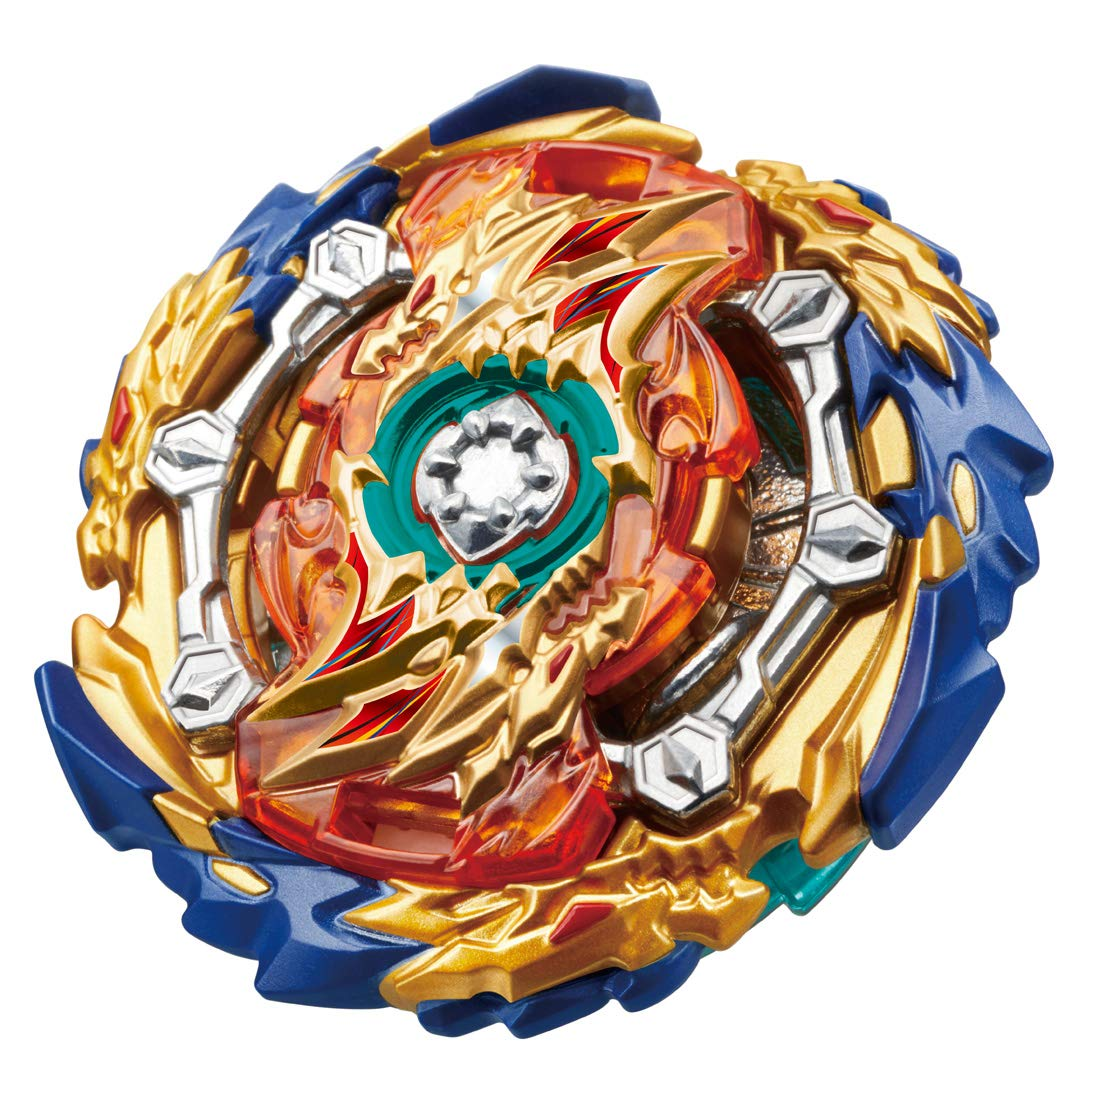 Beyblade Burst B-139 Starter Wizard Fafnir.Rt.Rs Sen (Japan Import) by Takara Tomy